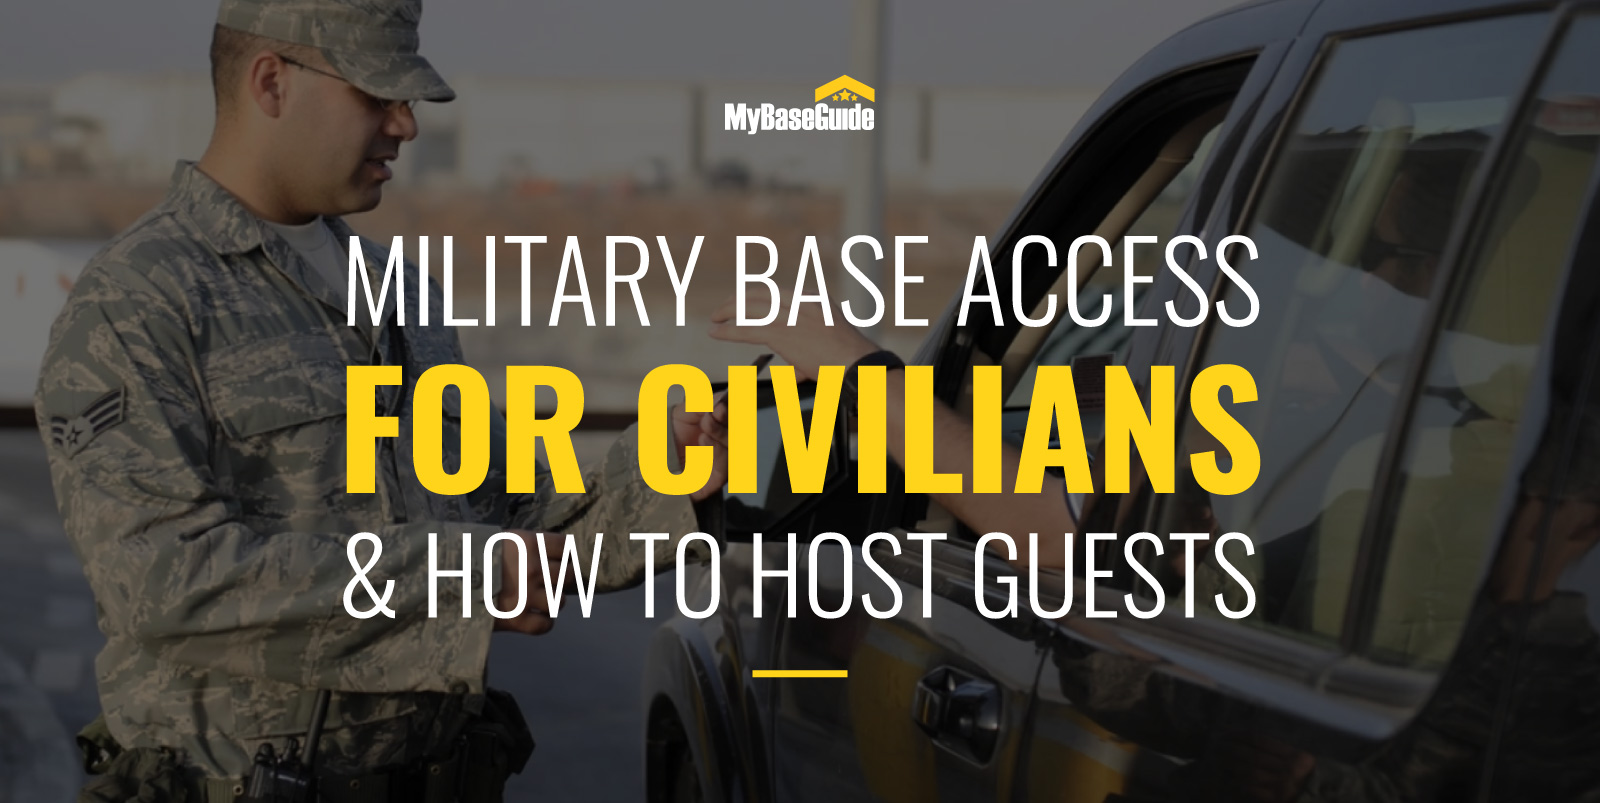 Military Base Access for Civilians & How to Host Guests